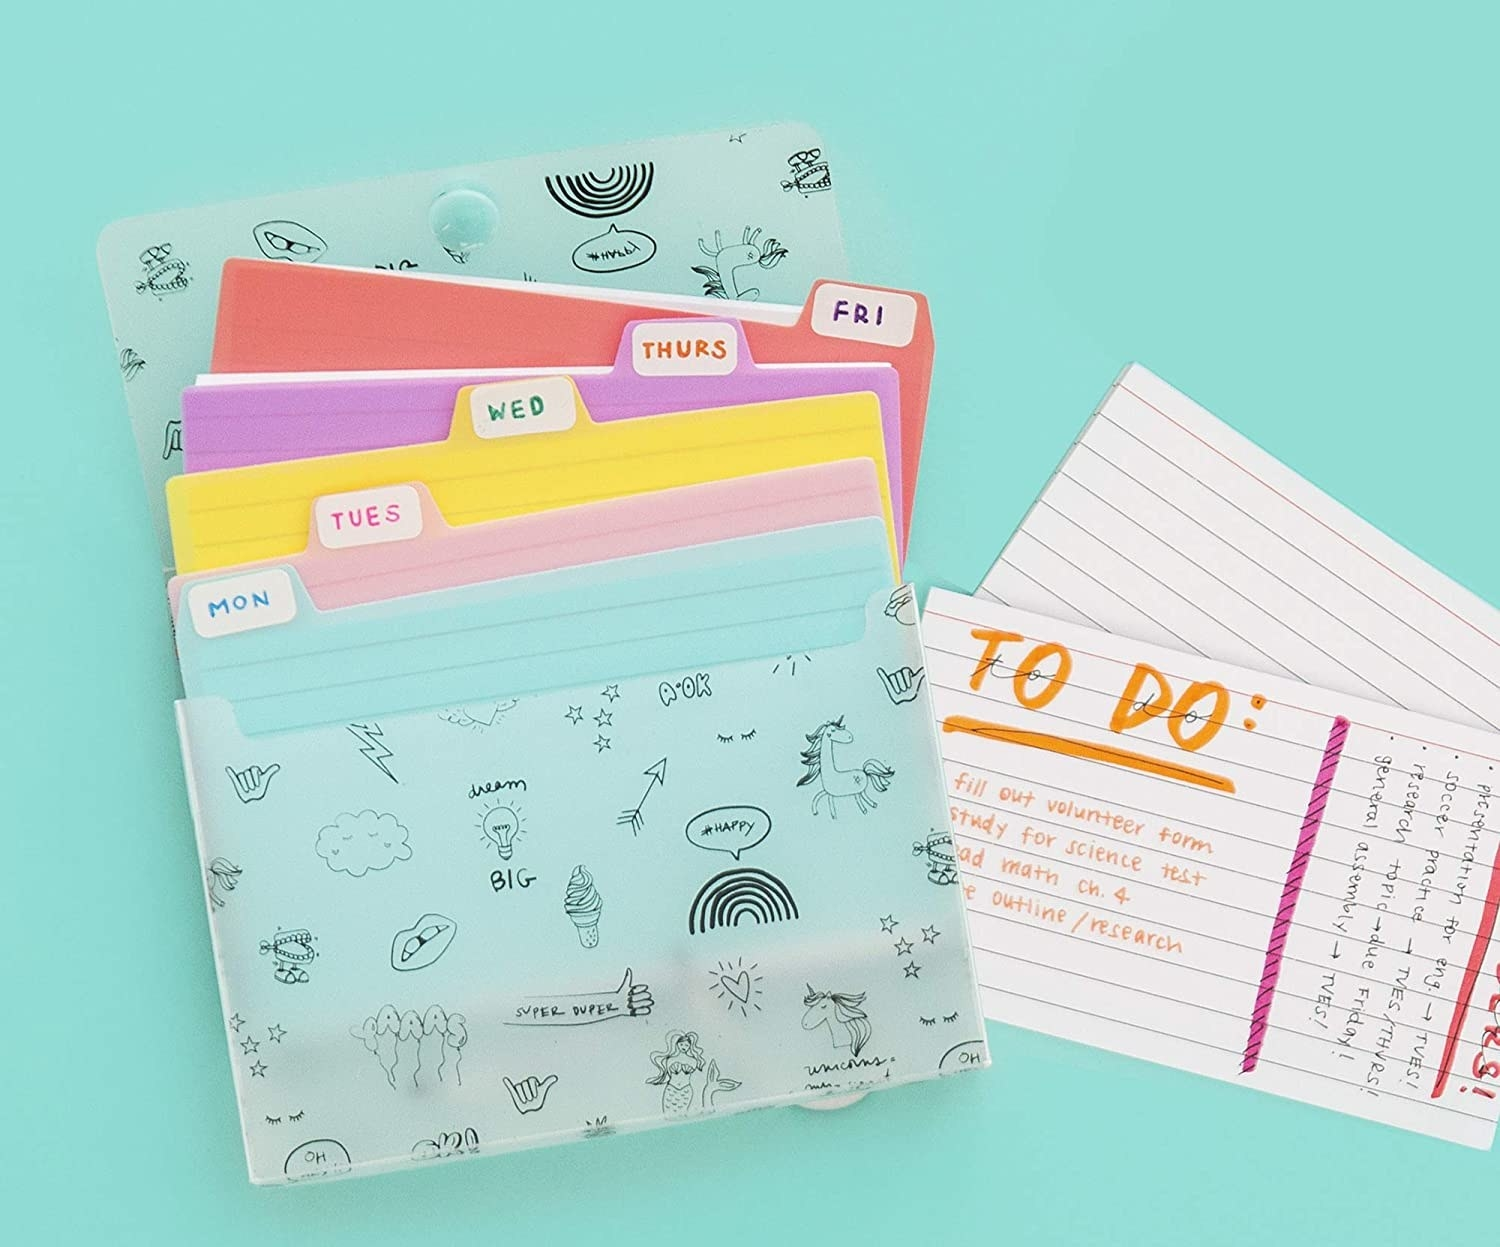 A index card case filled with index cards and dividers